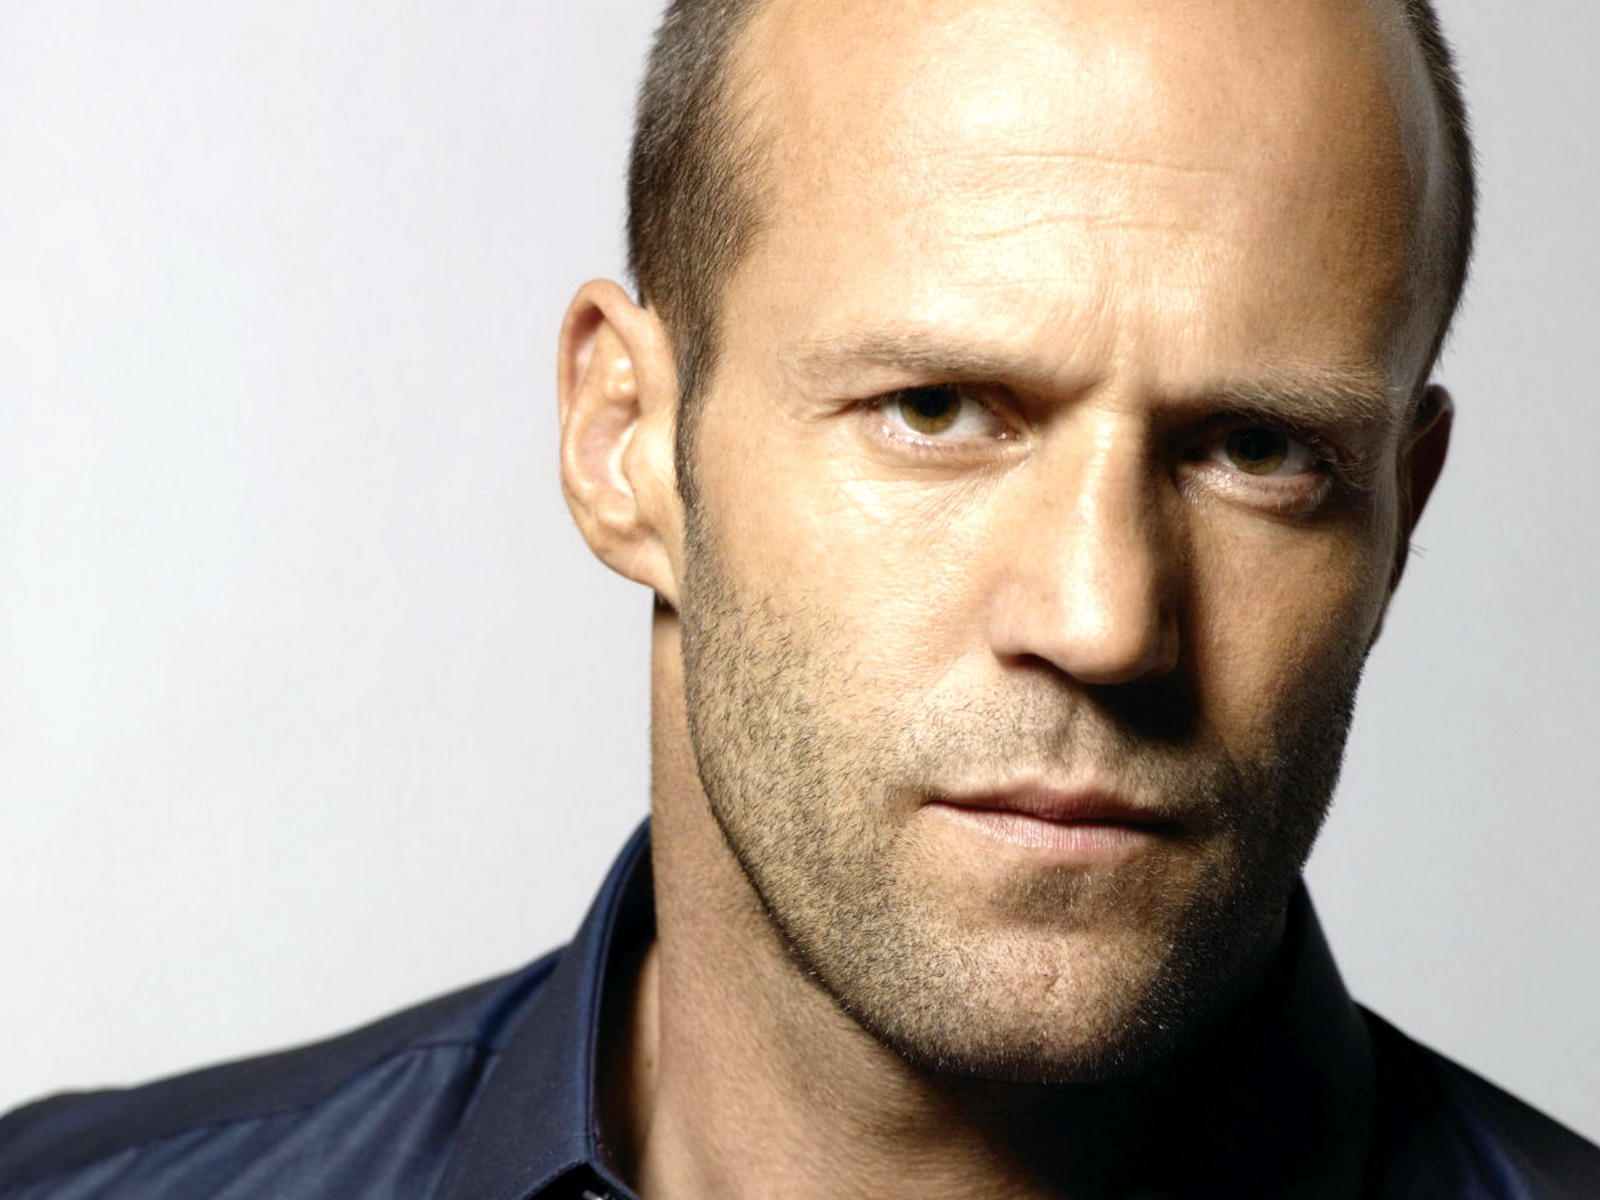 Jason Statham Wallpape...